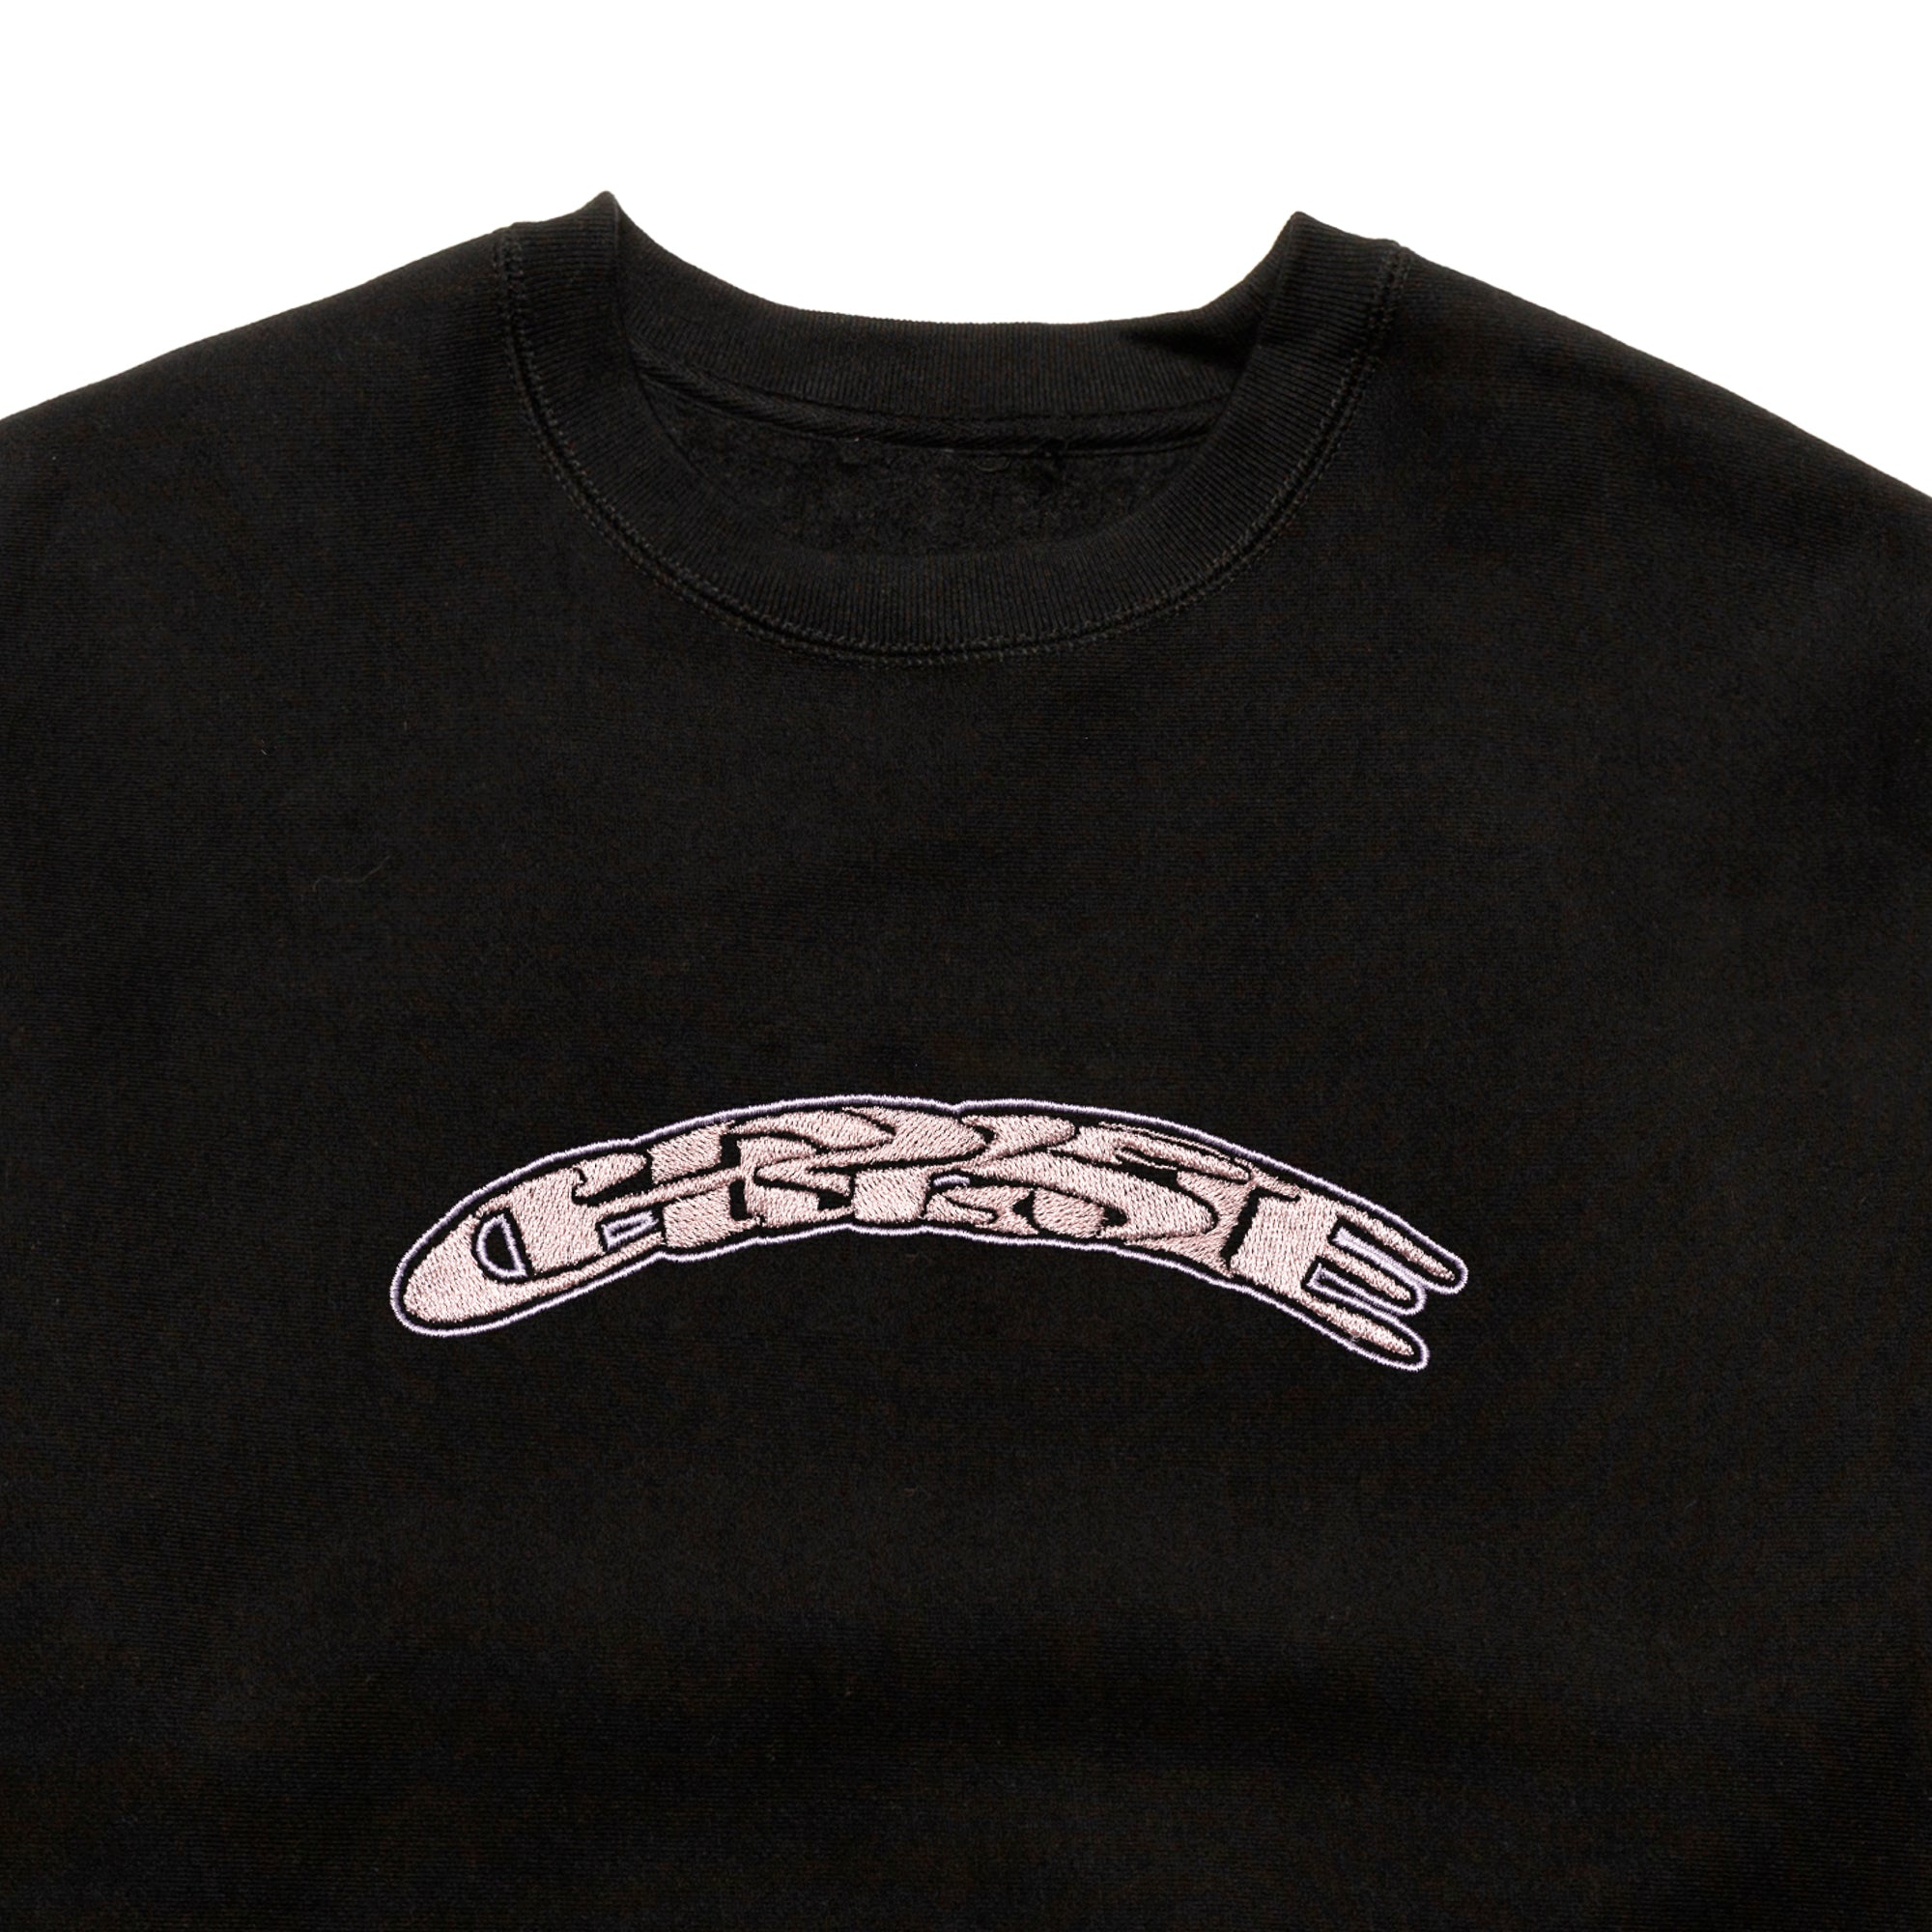 Load image into Gallery viewer, SWFC Twisted logo crewneck / Away Color